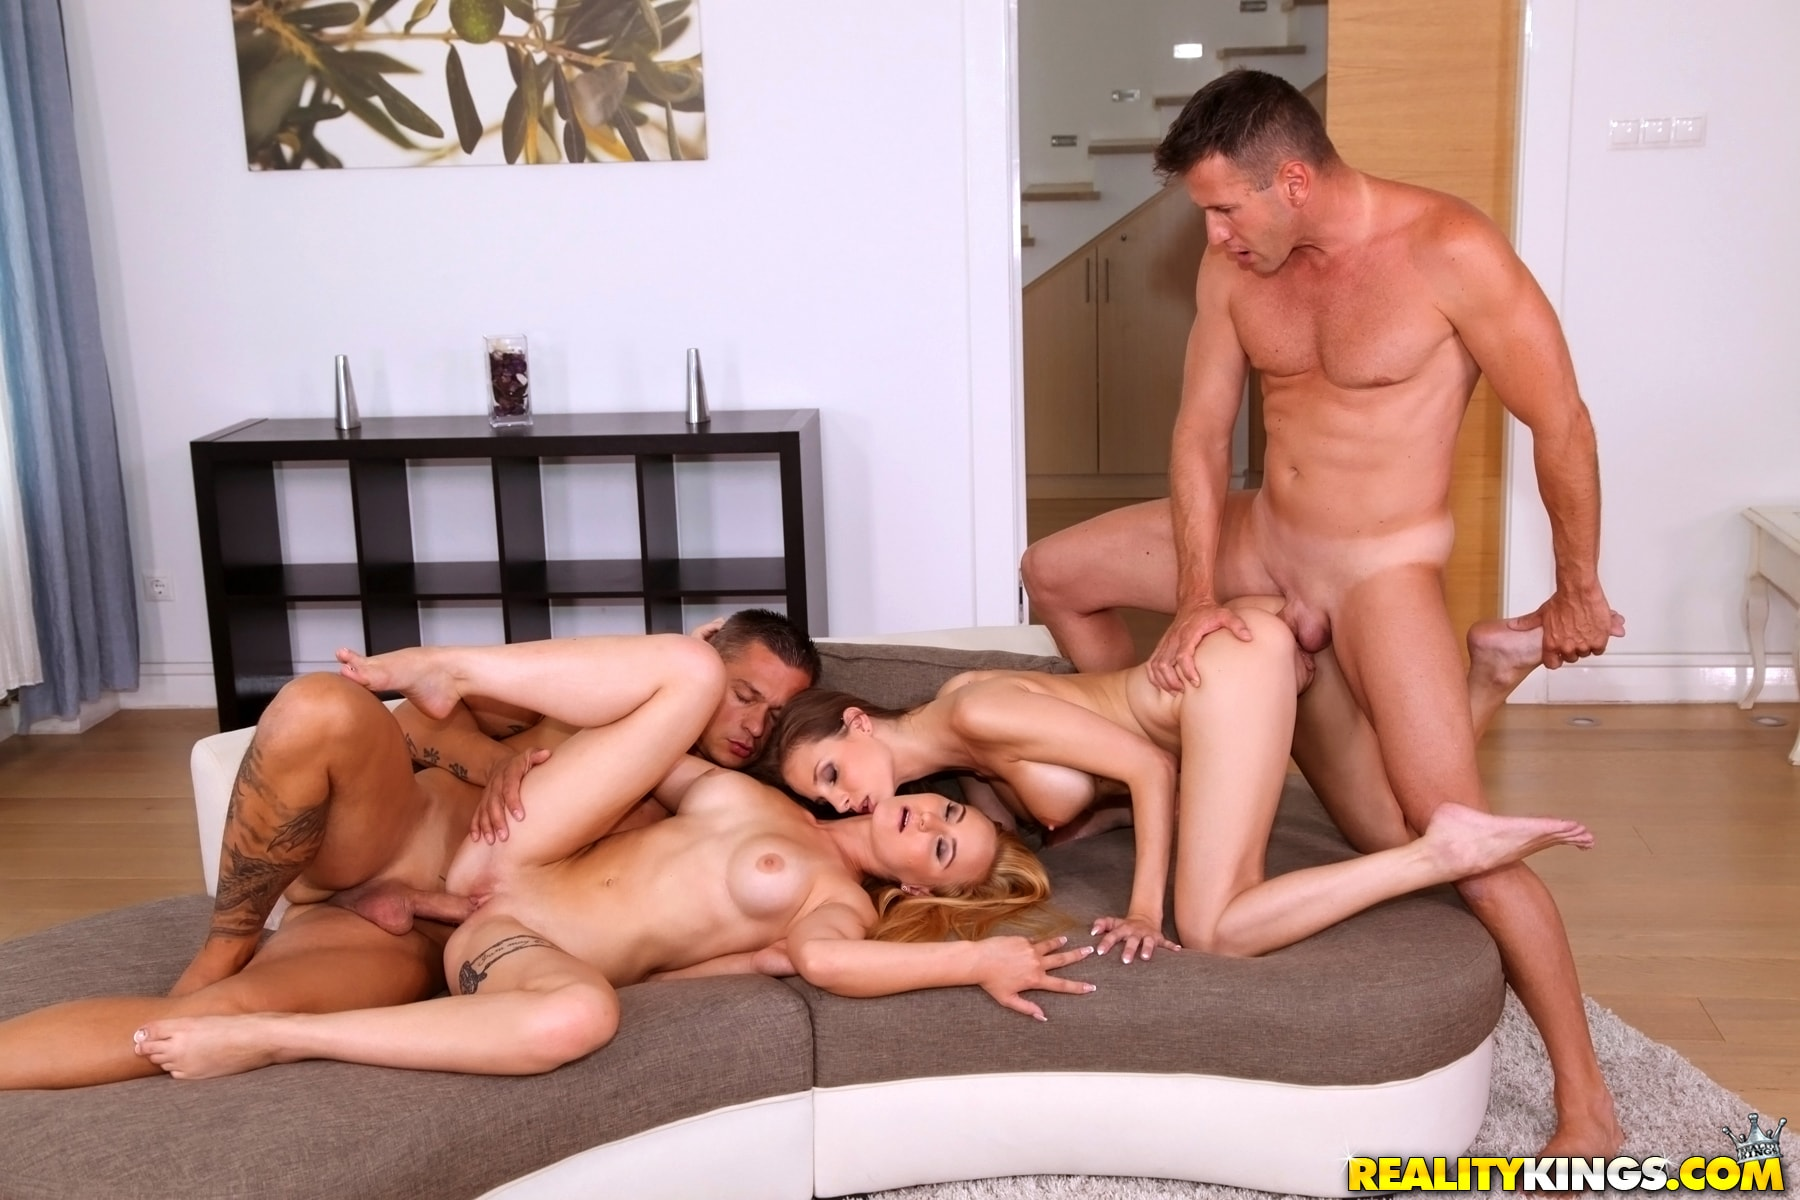 Reality Kings 'Bad but good at it' starring Mary Wet (Photo 350)